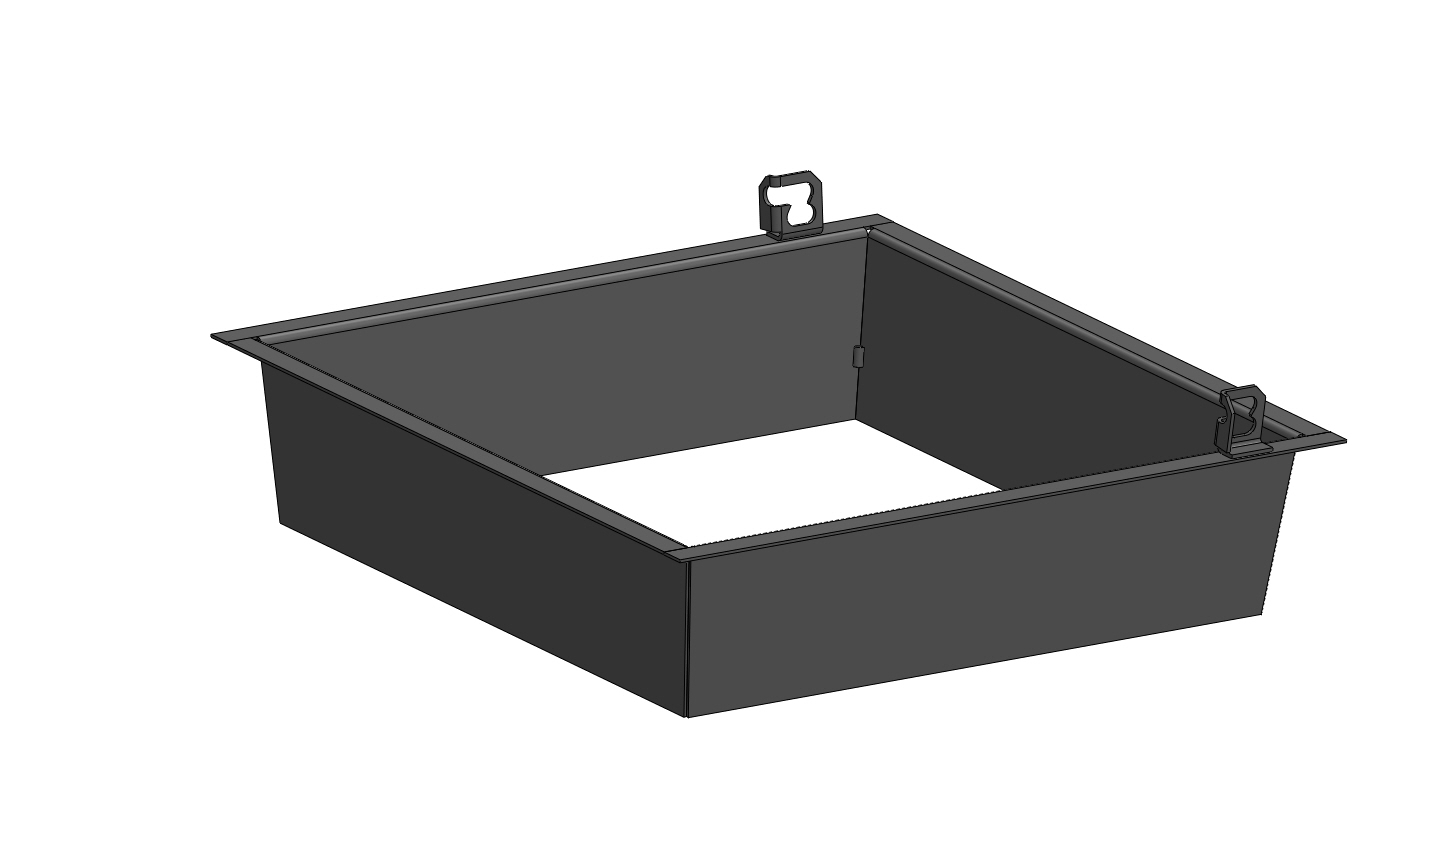 Inserts - Inserts - The Firepit Source